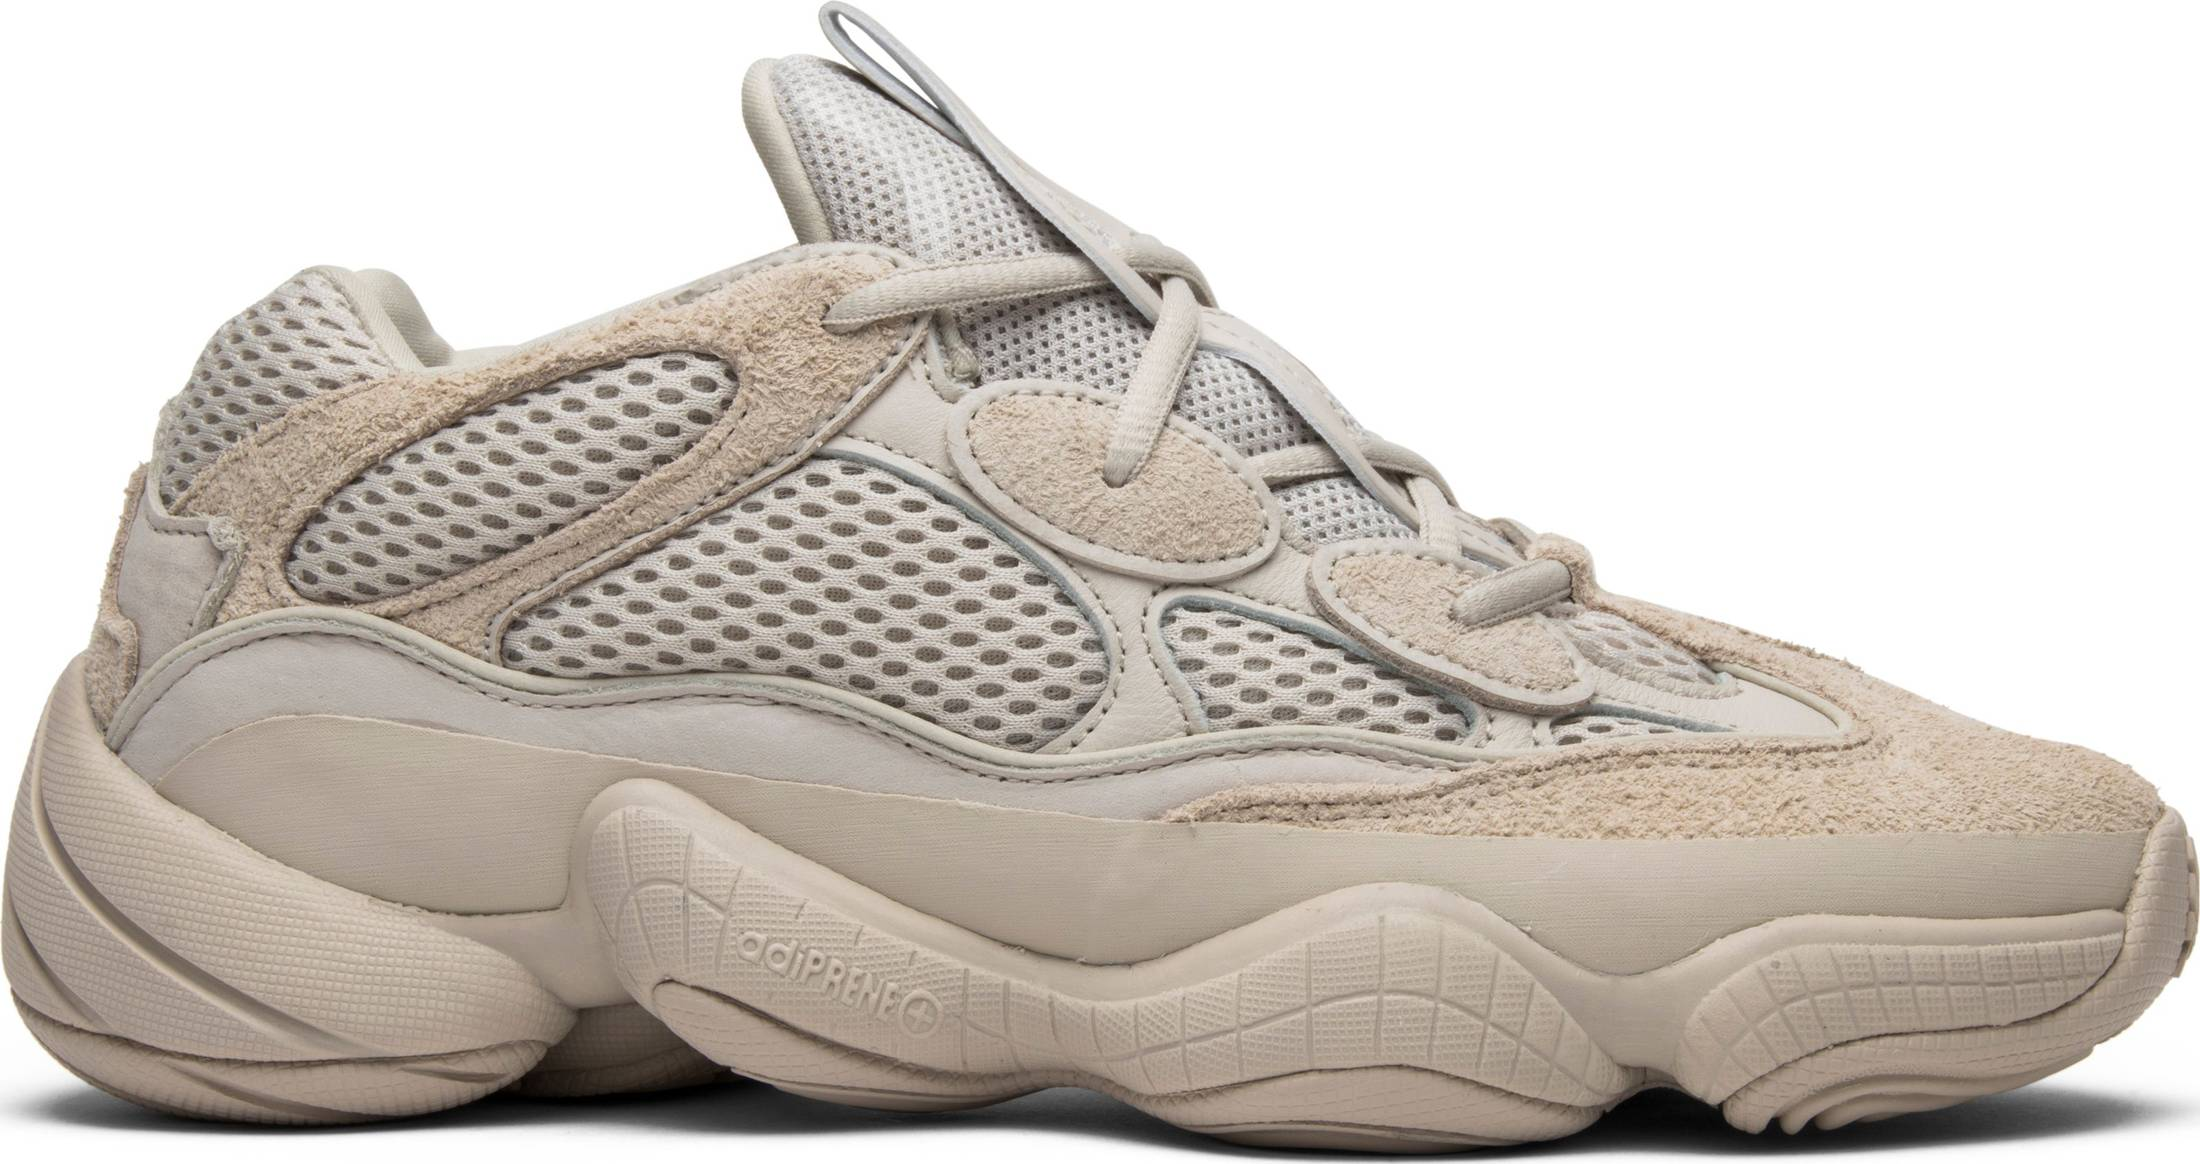 super popular 51cf1 18895 Blush - adidas Yeezy 500 Desert Rat